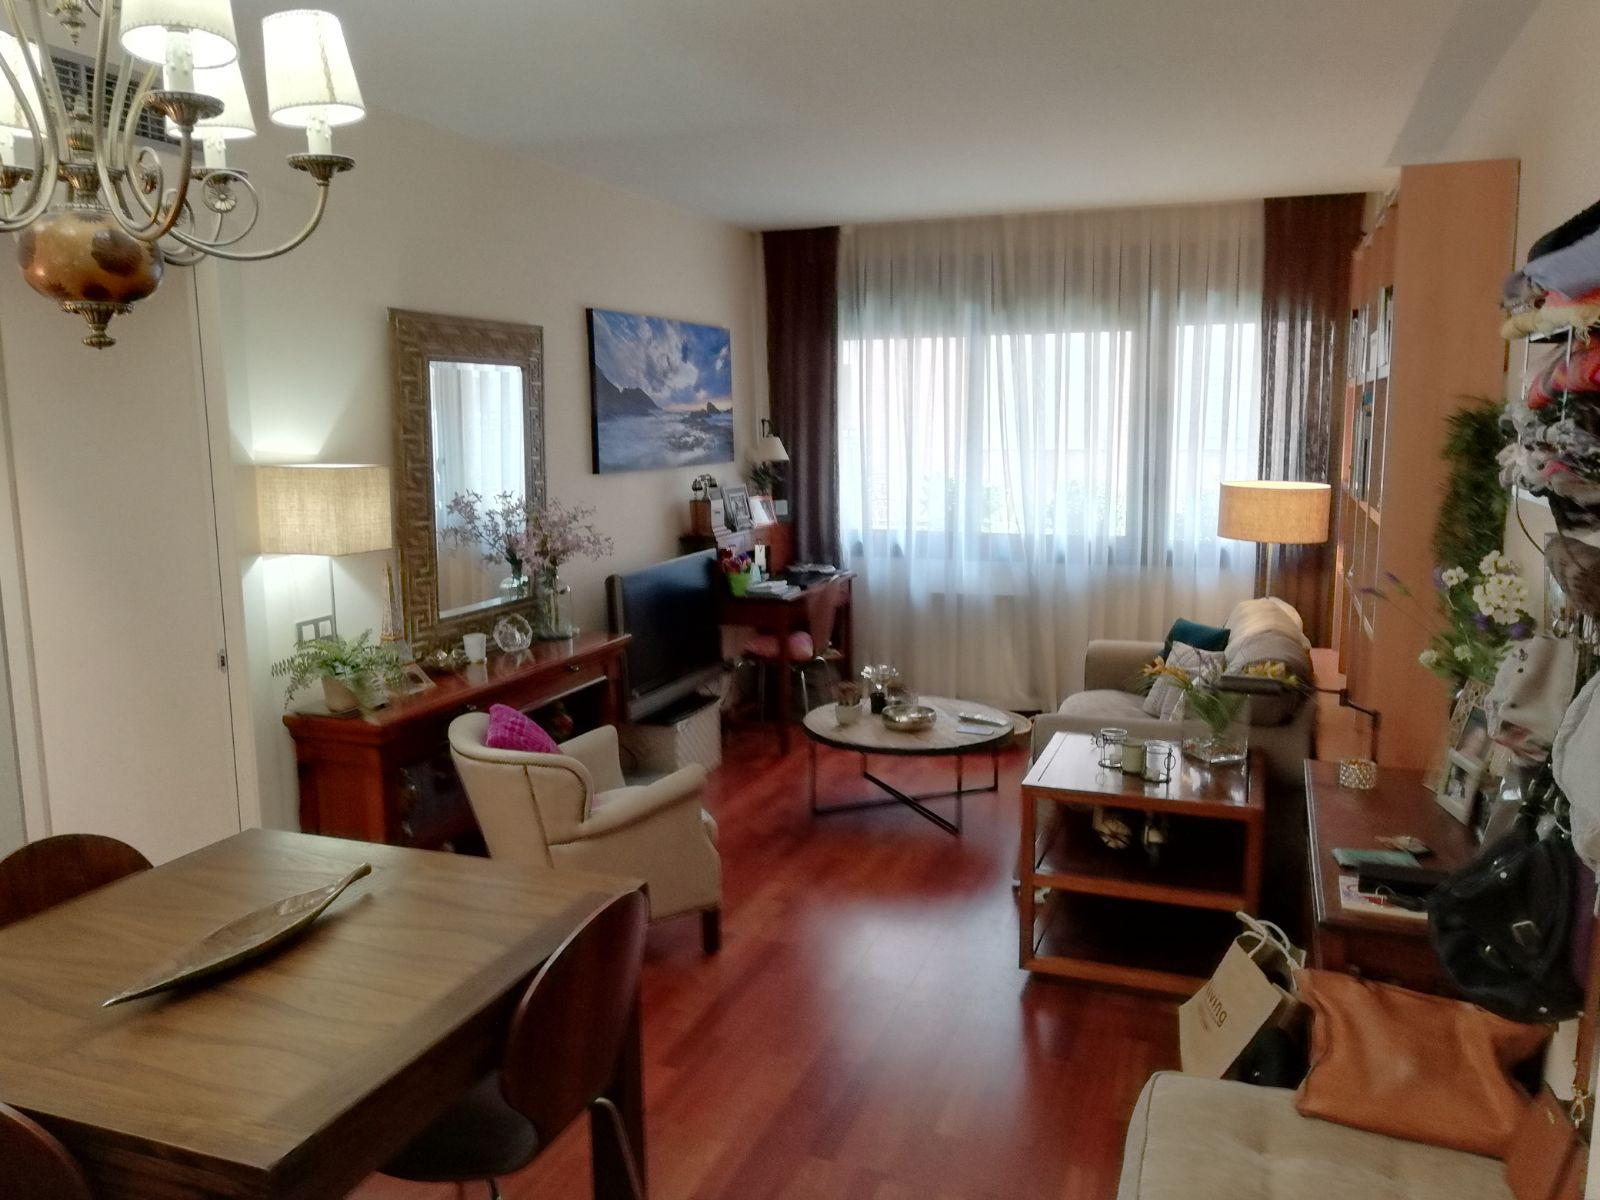 206210 Apartment for sale in Sants-Montjuïc, Sants 1